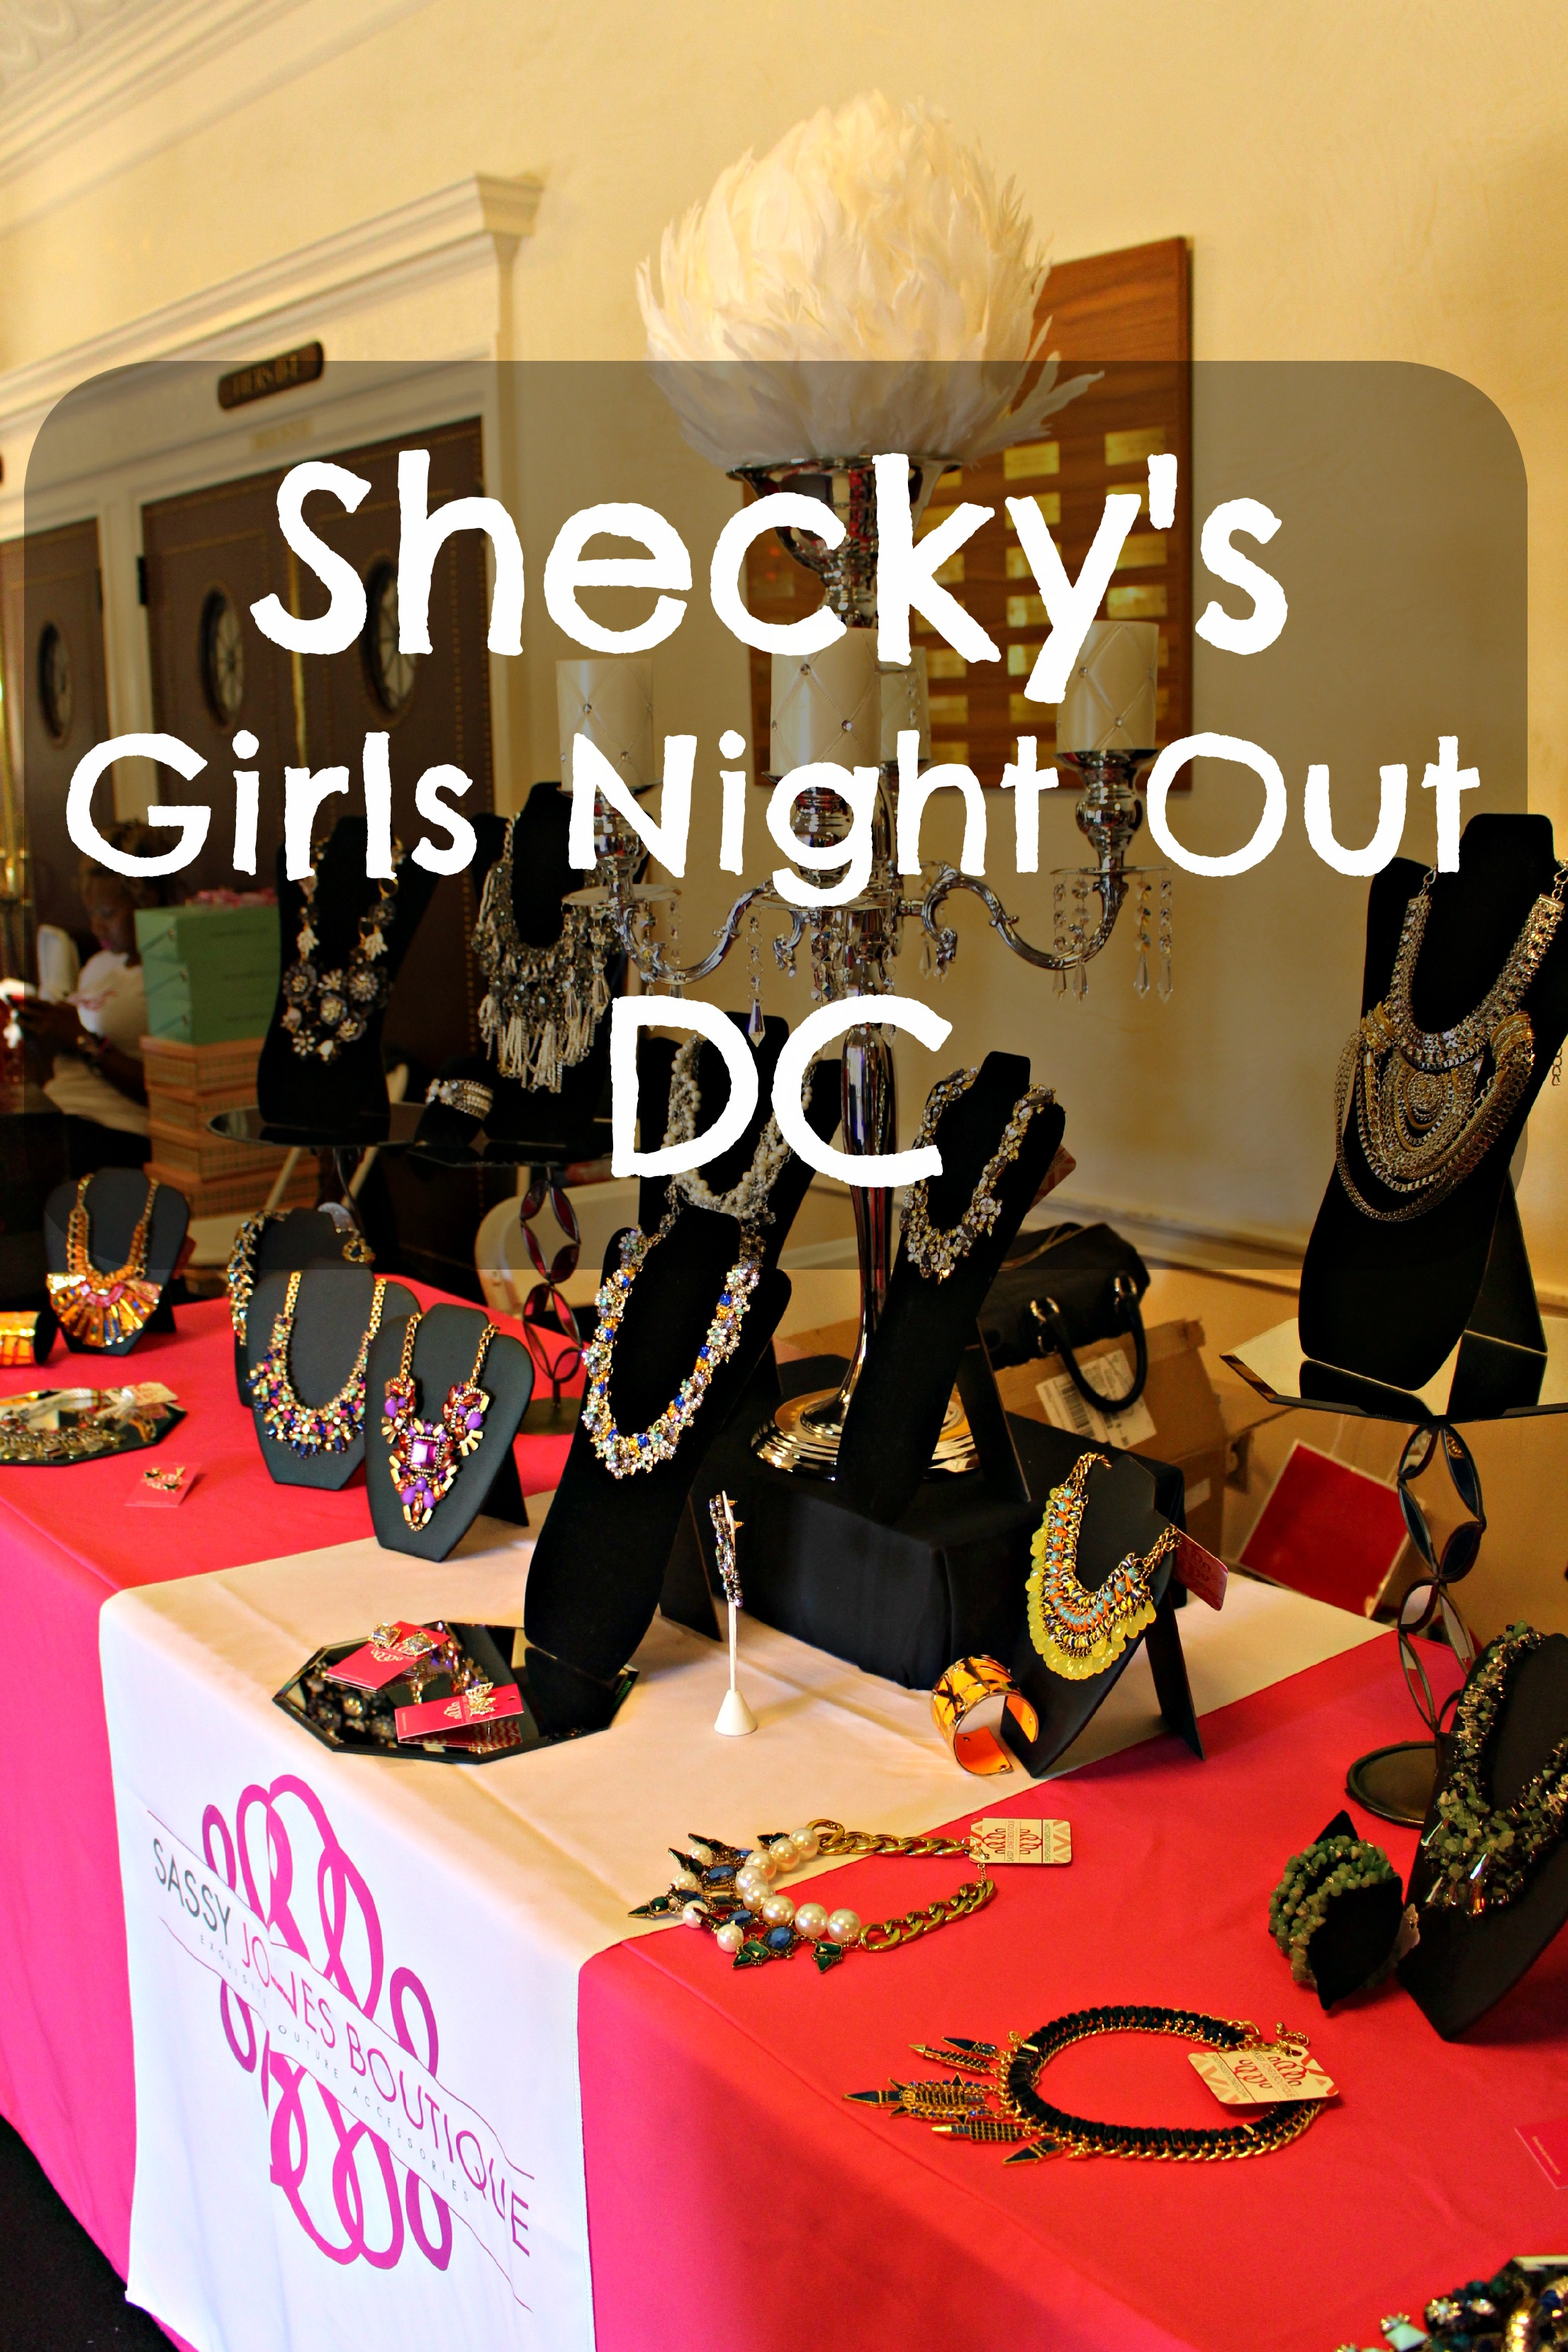 Shecky's Girls Night Out DC